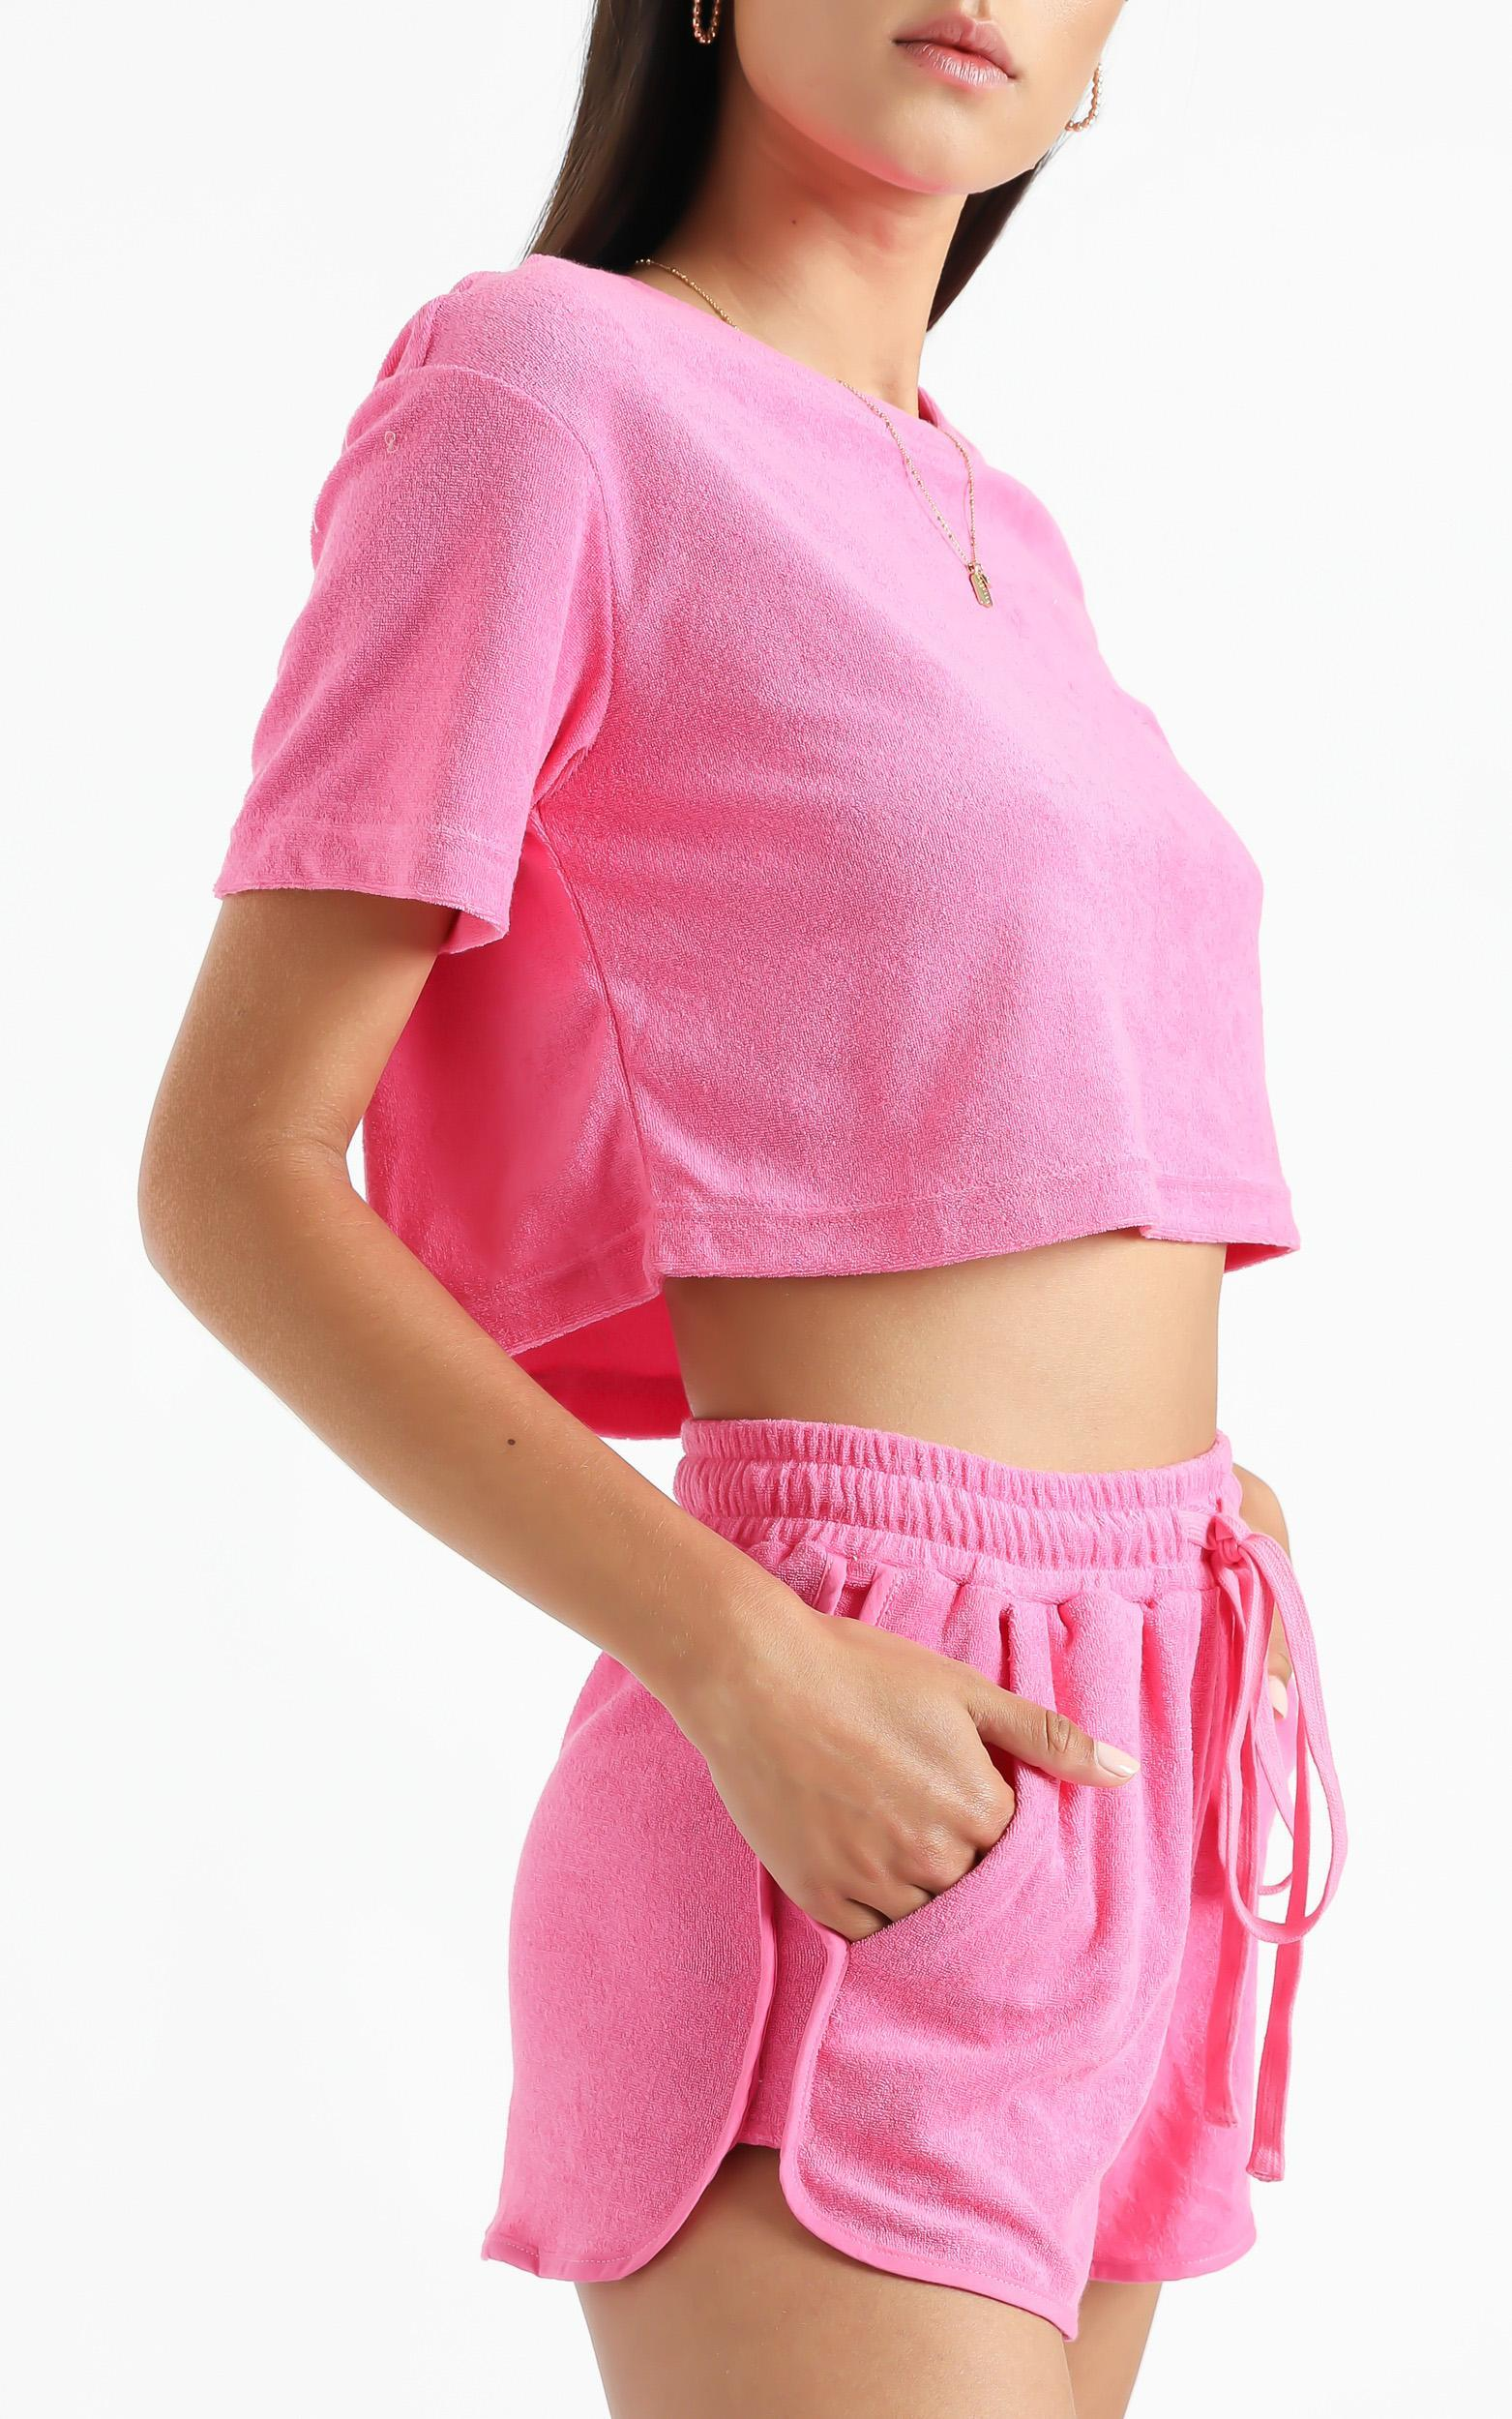 Nori Two Piece Set in Hot Pink Terry Towelling - 6 (XS), PNK11, hi-res image number null